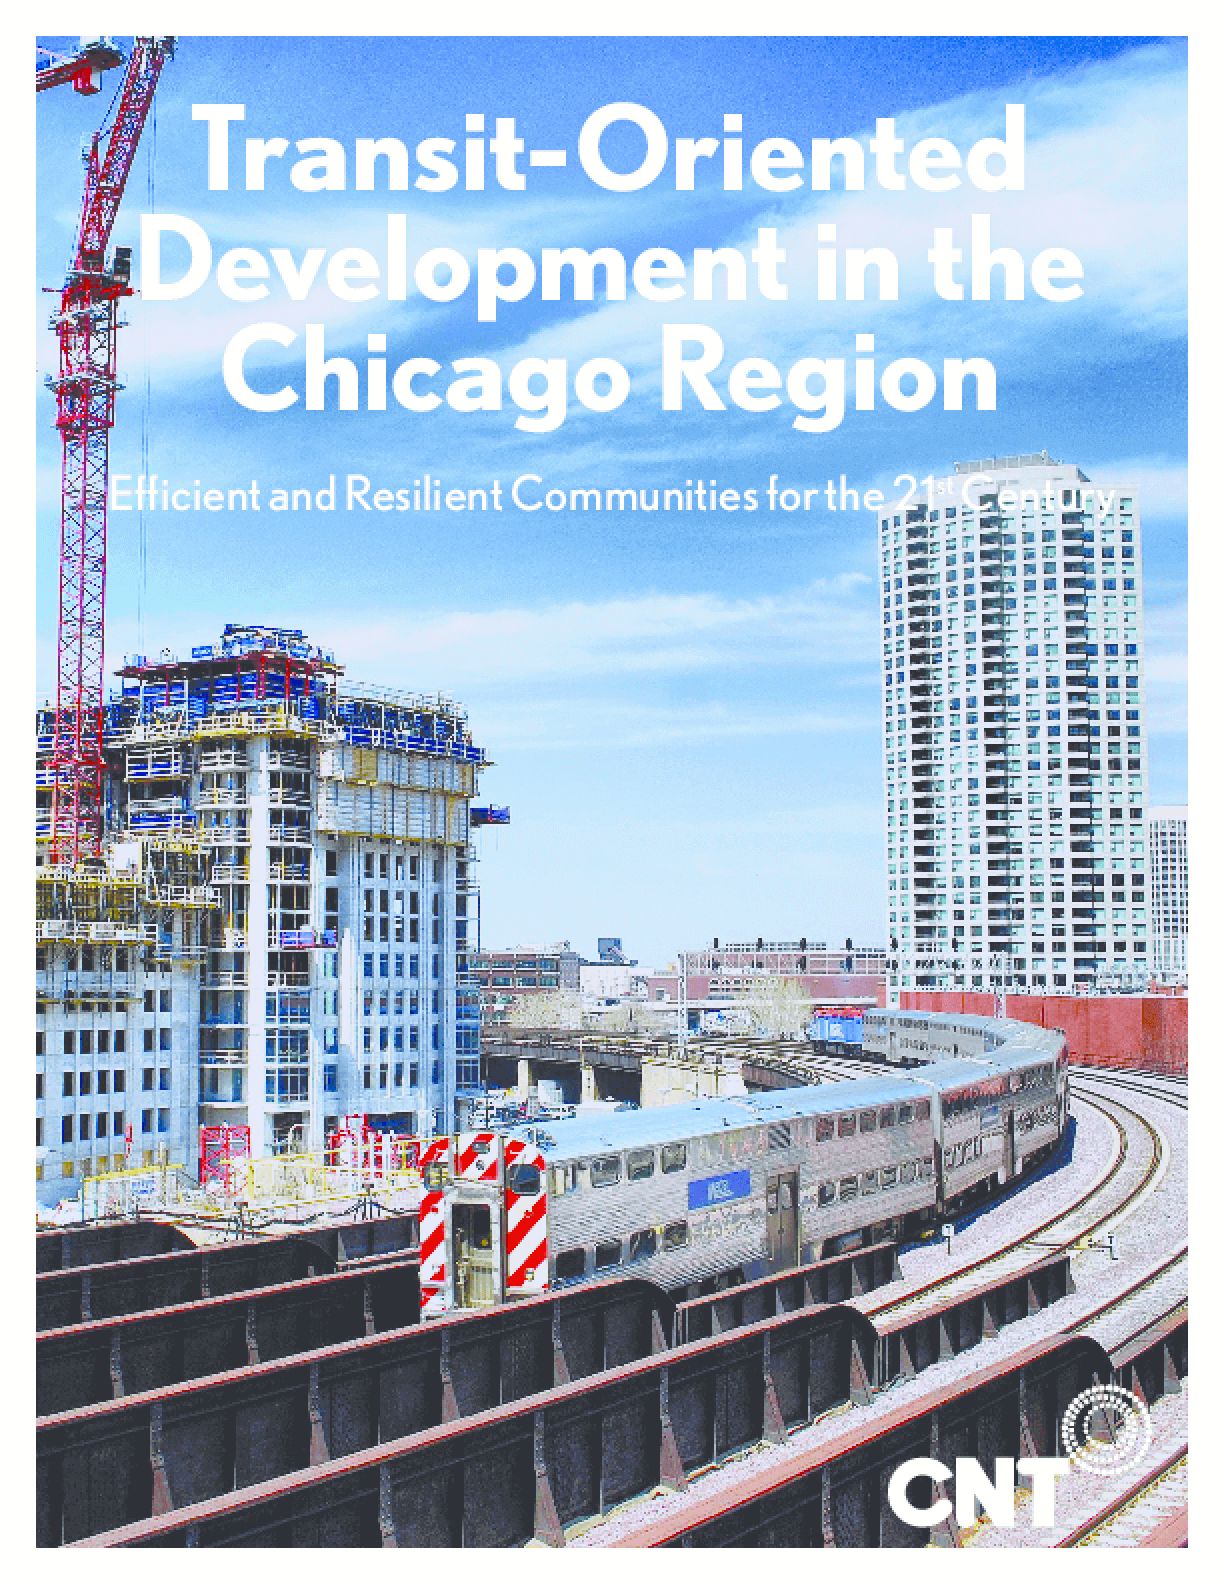 Transit-Oriented Development in the Chicago Region: Efficient and Resilient Communities for the 21st Century